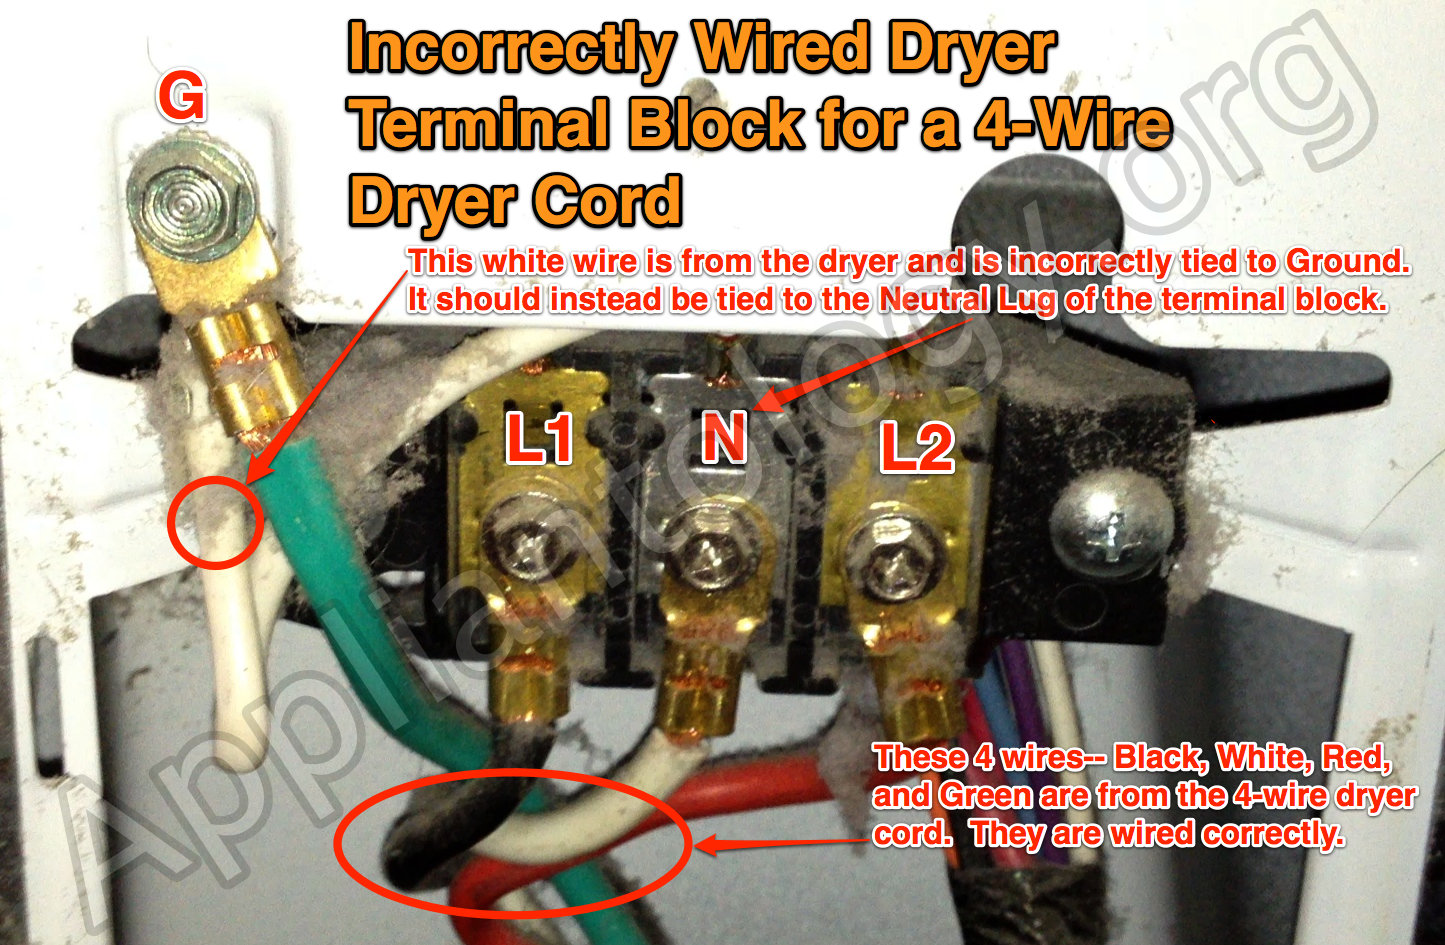 4 Wire Dryer Diagram | Wiring Diagram  Wire Cord Wiring Diagram on